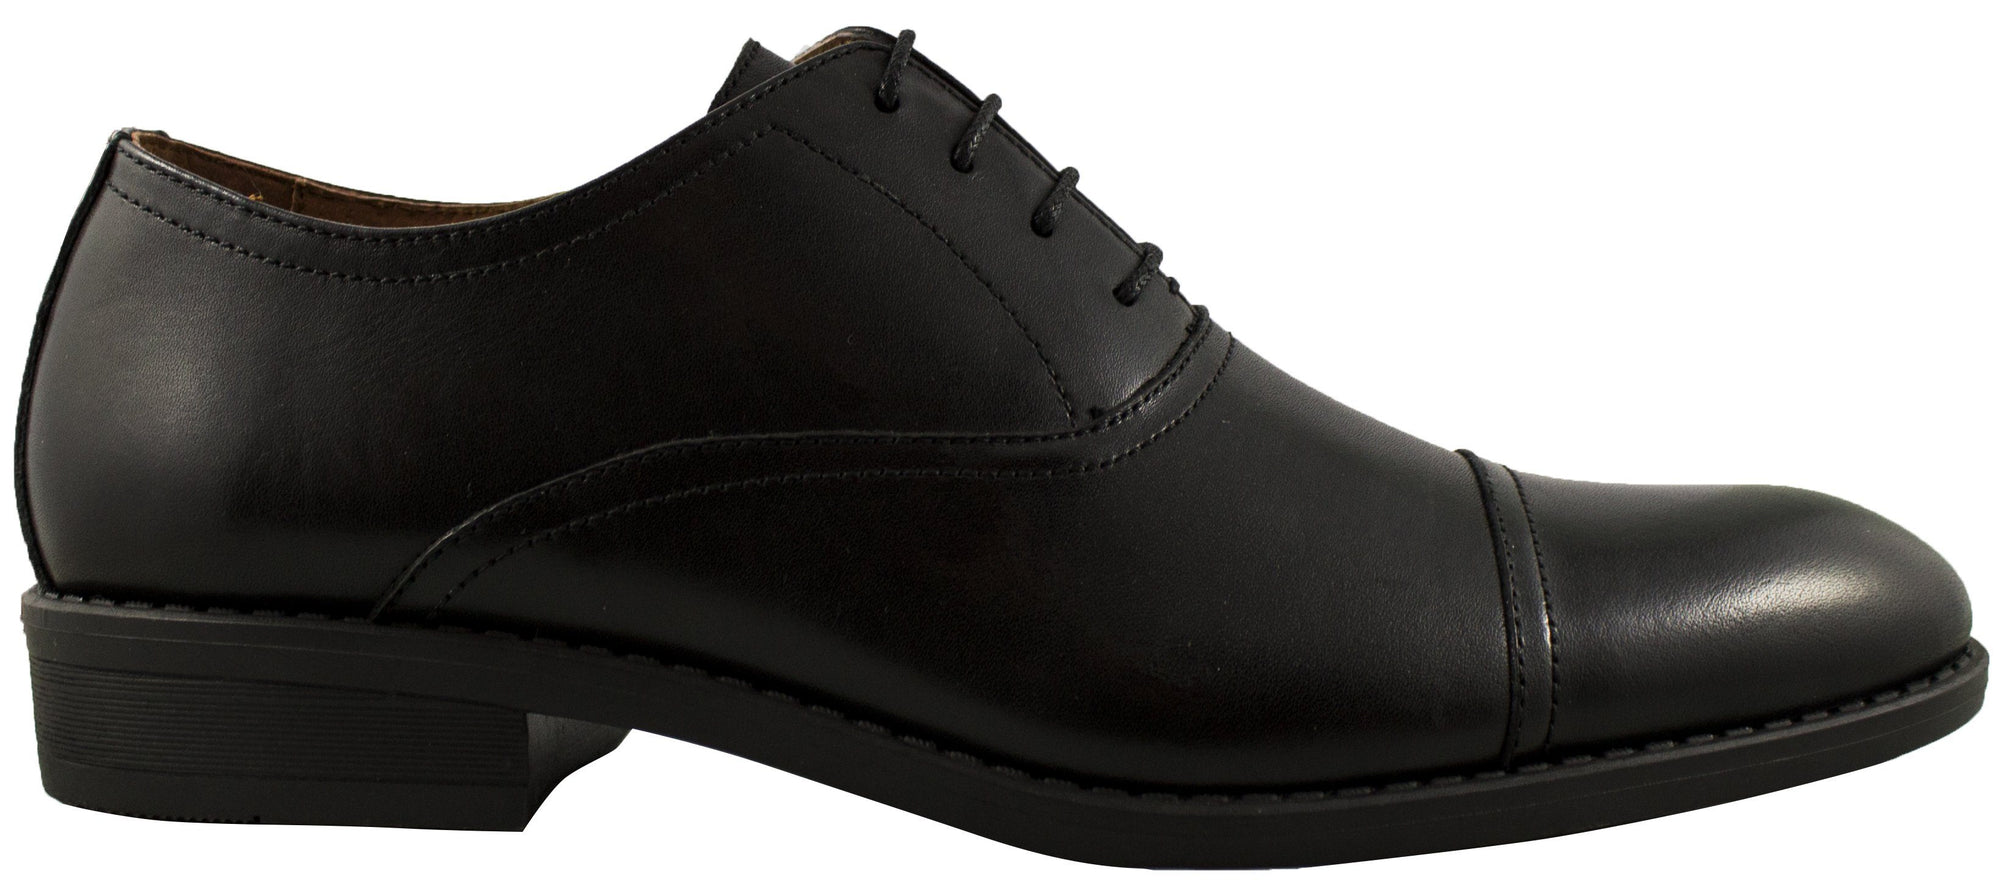 Geoffrey Beene - Hudson Leather Toe Cap Dress Shoe - Black Footwear Geoffrey Beene